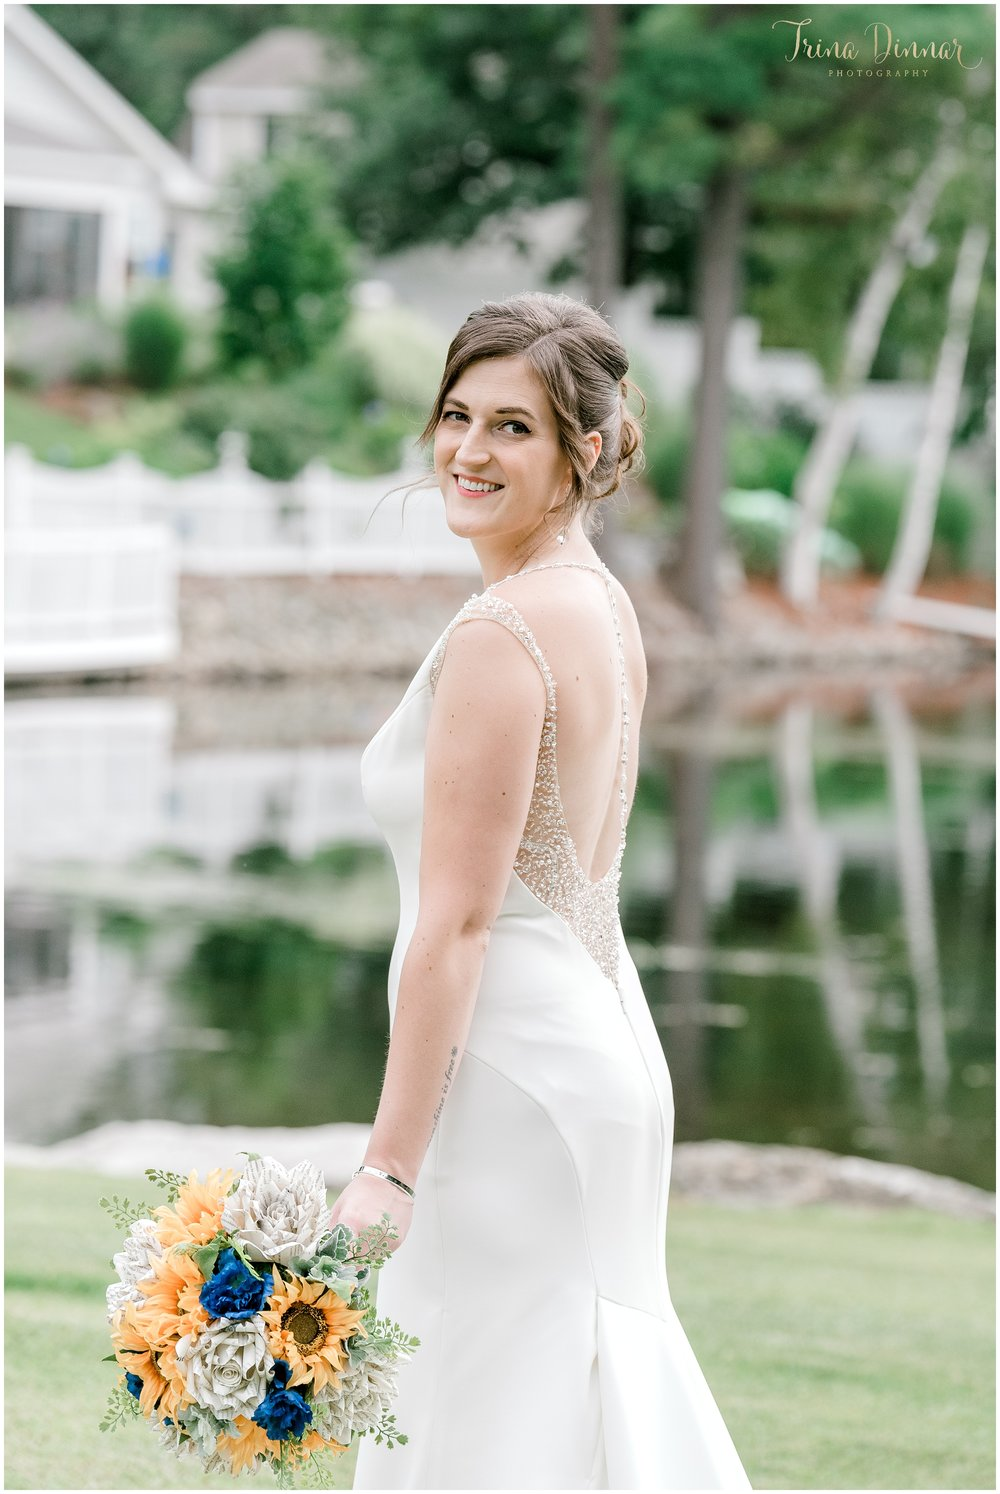 Wedding Portrait of bride Erica Metcalf at the Castleton in Windham, NH